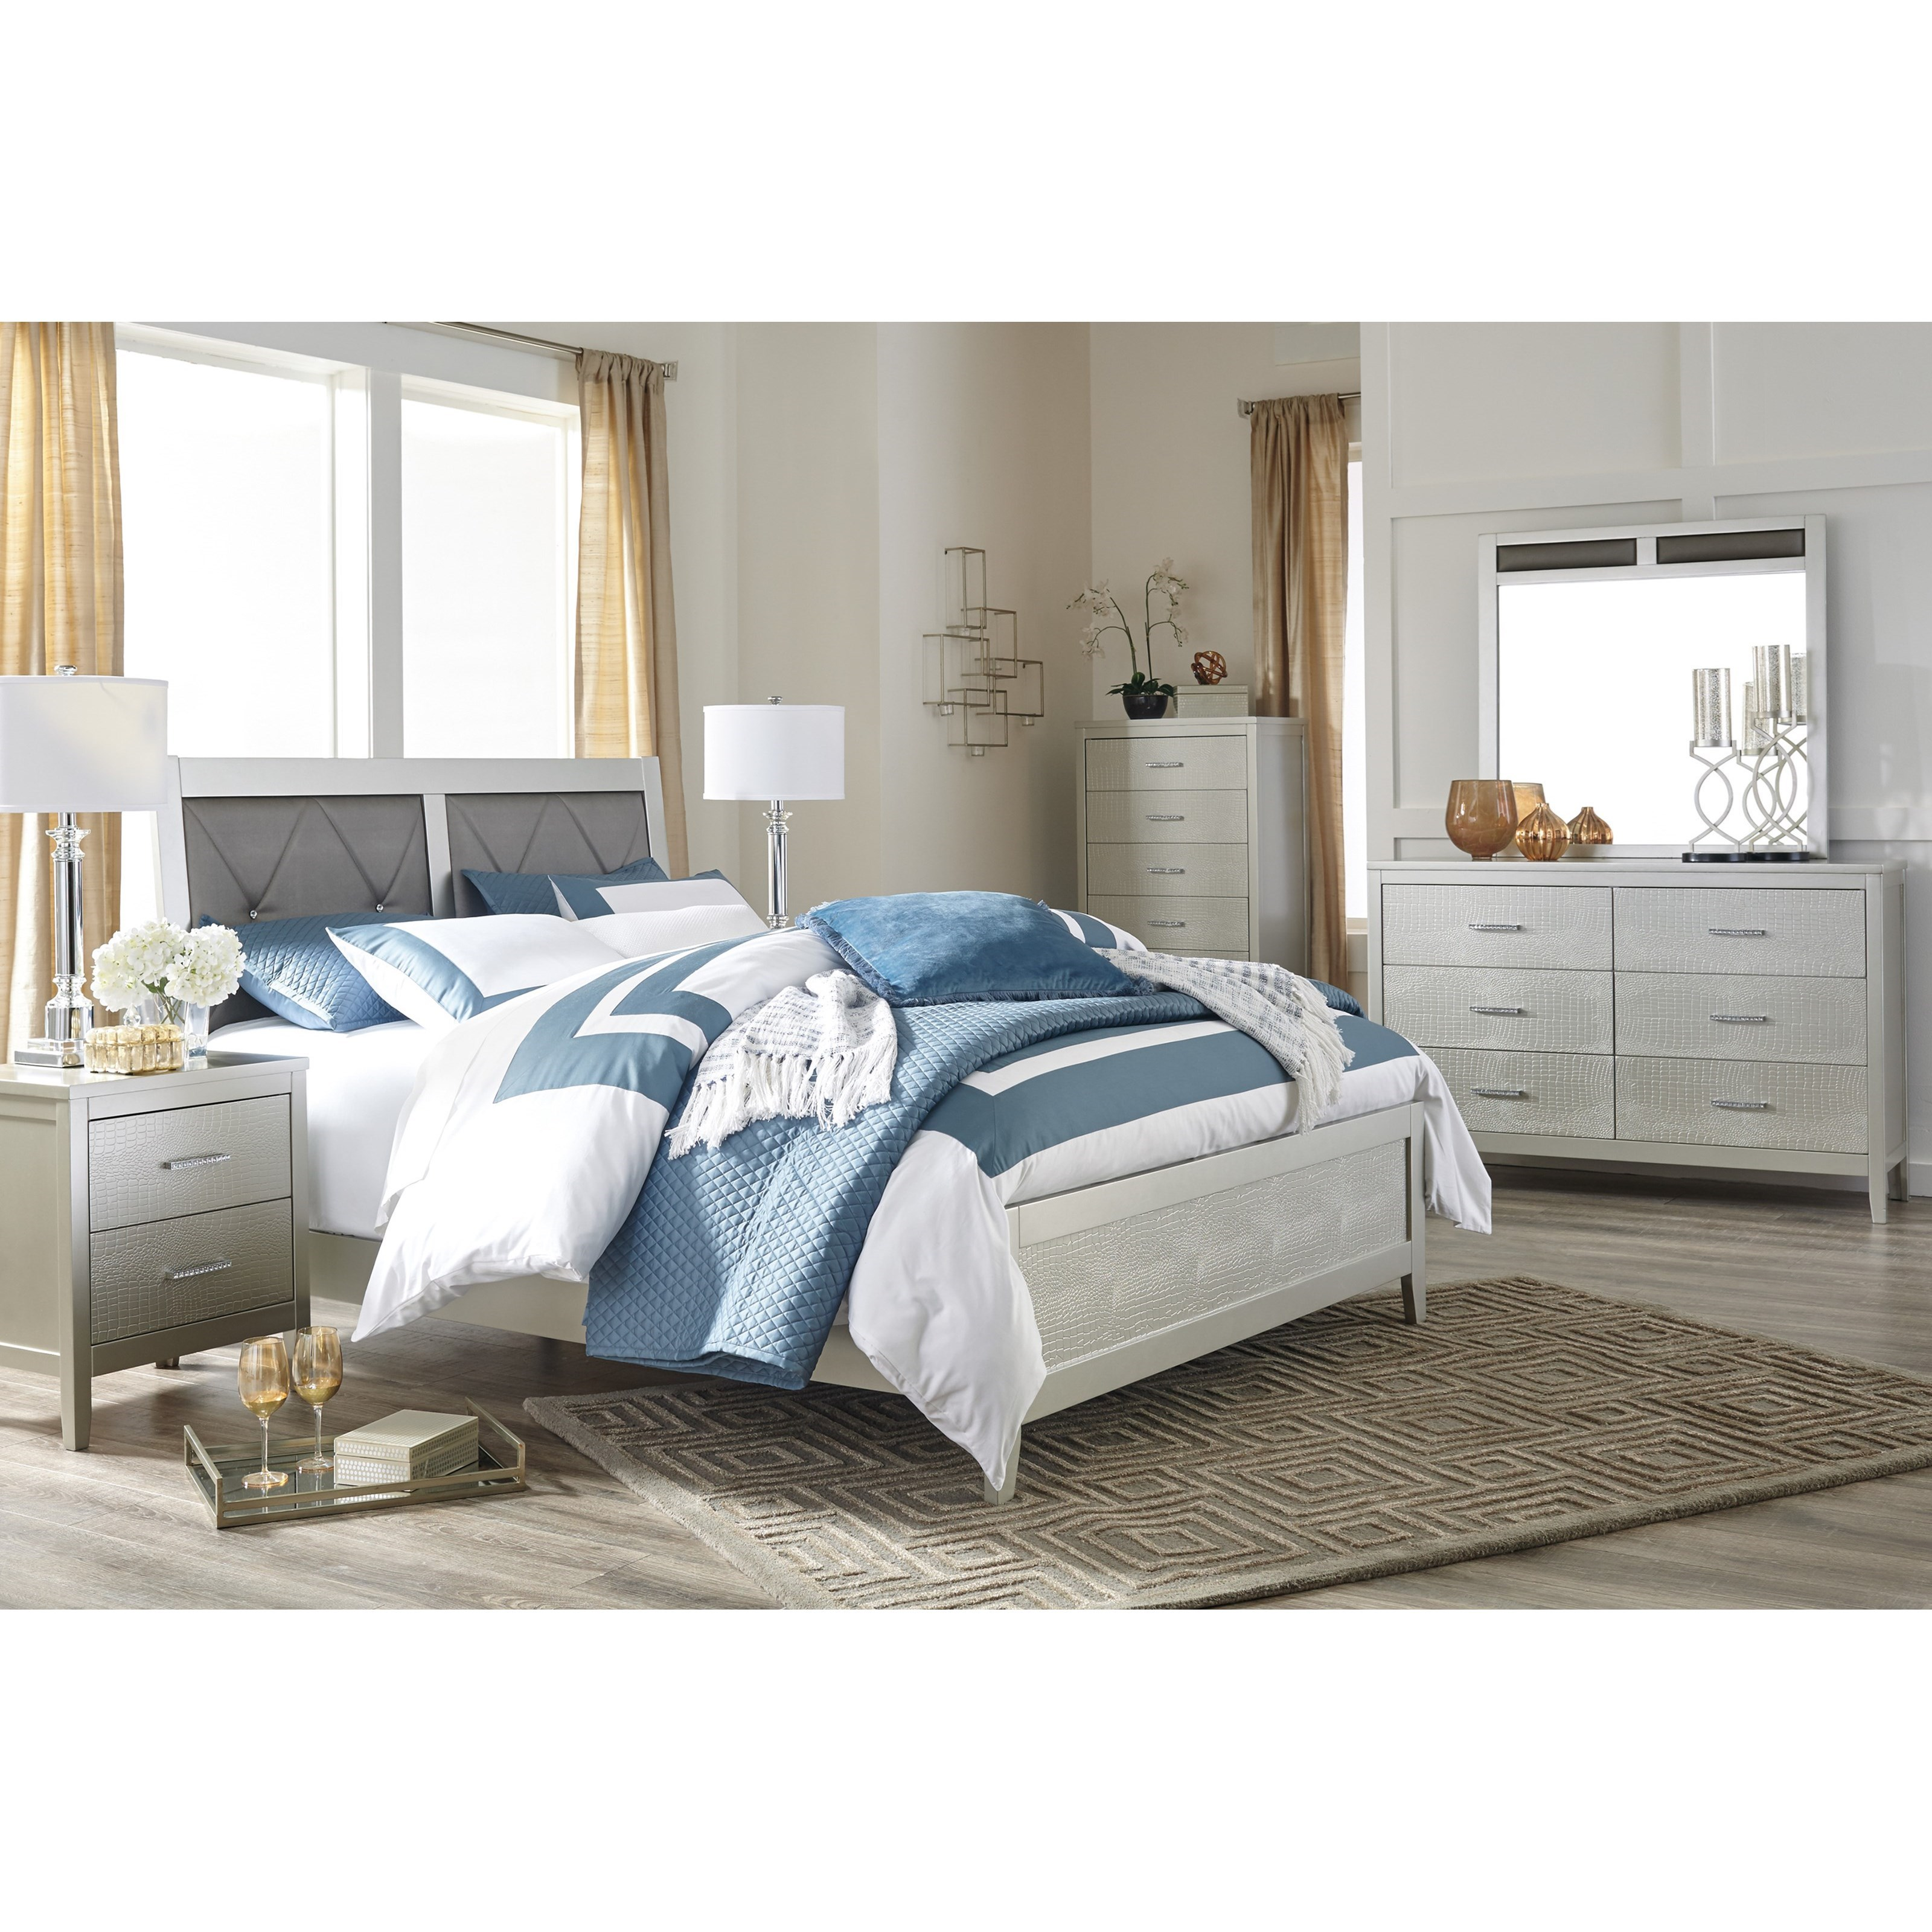 Olivet King Bedroom Group by Signature Design by Ashley at Zak's Warehouse Clearance Center